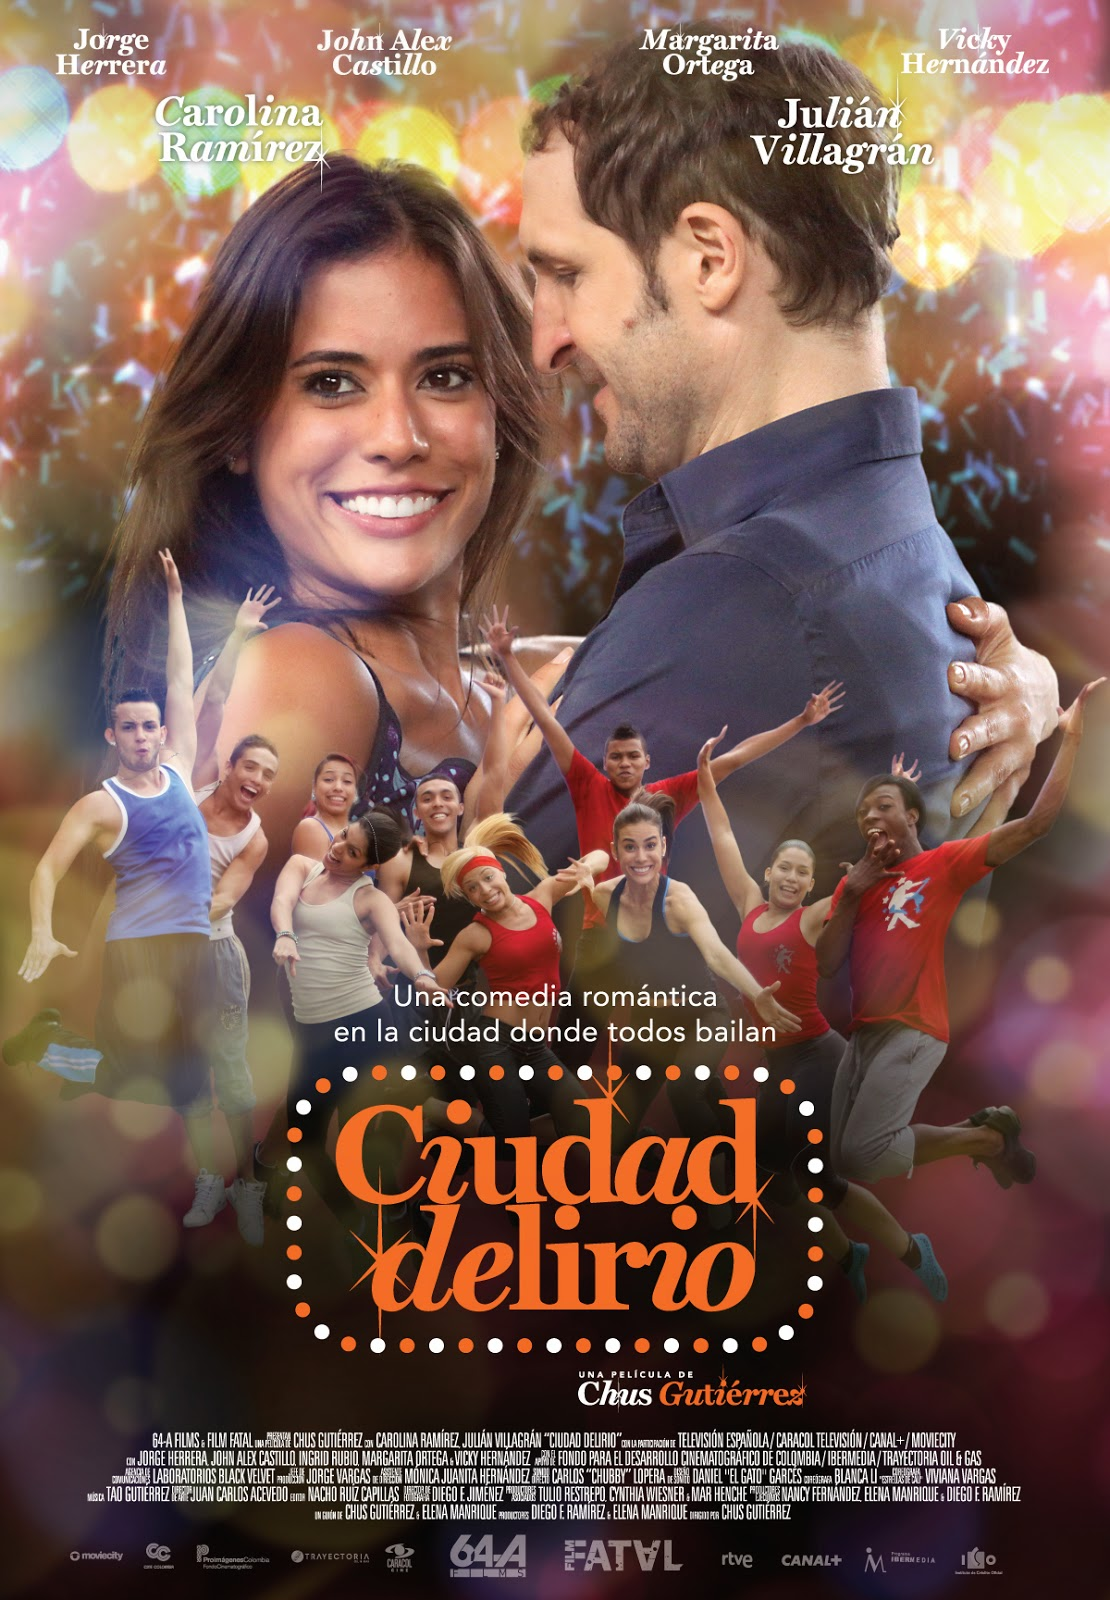 Ciudad Delirio Ver gratis online en vivo streaming sin descarga ni torrent